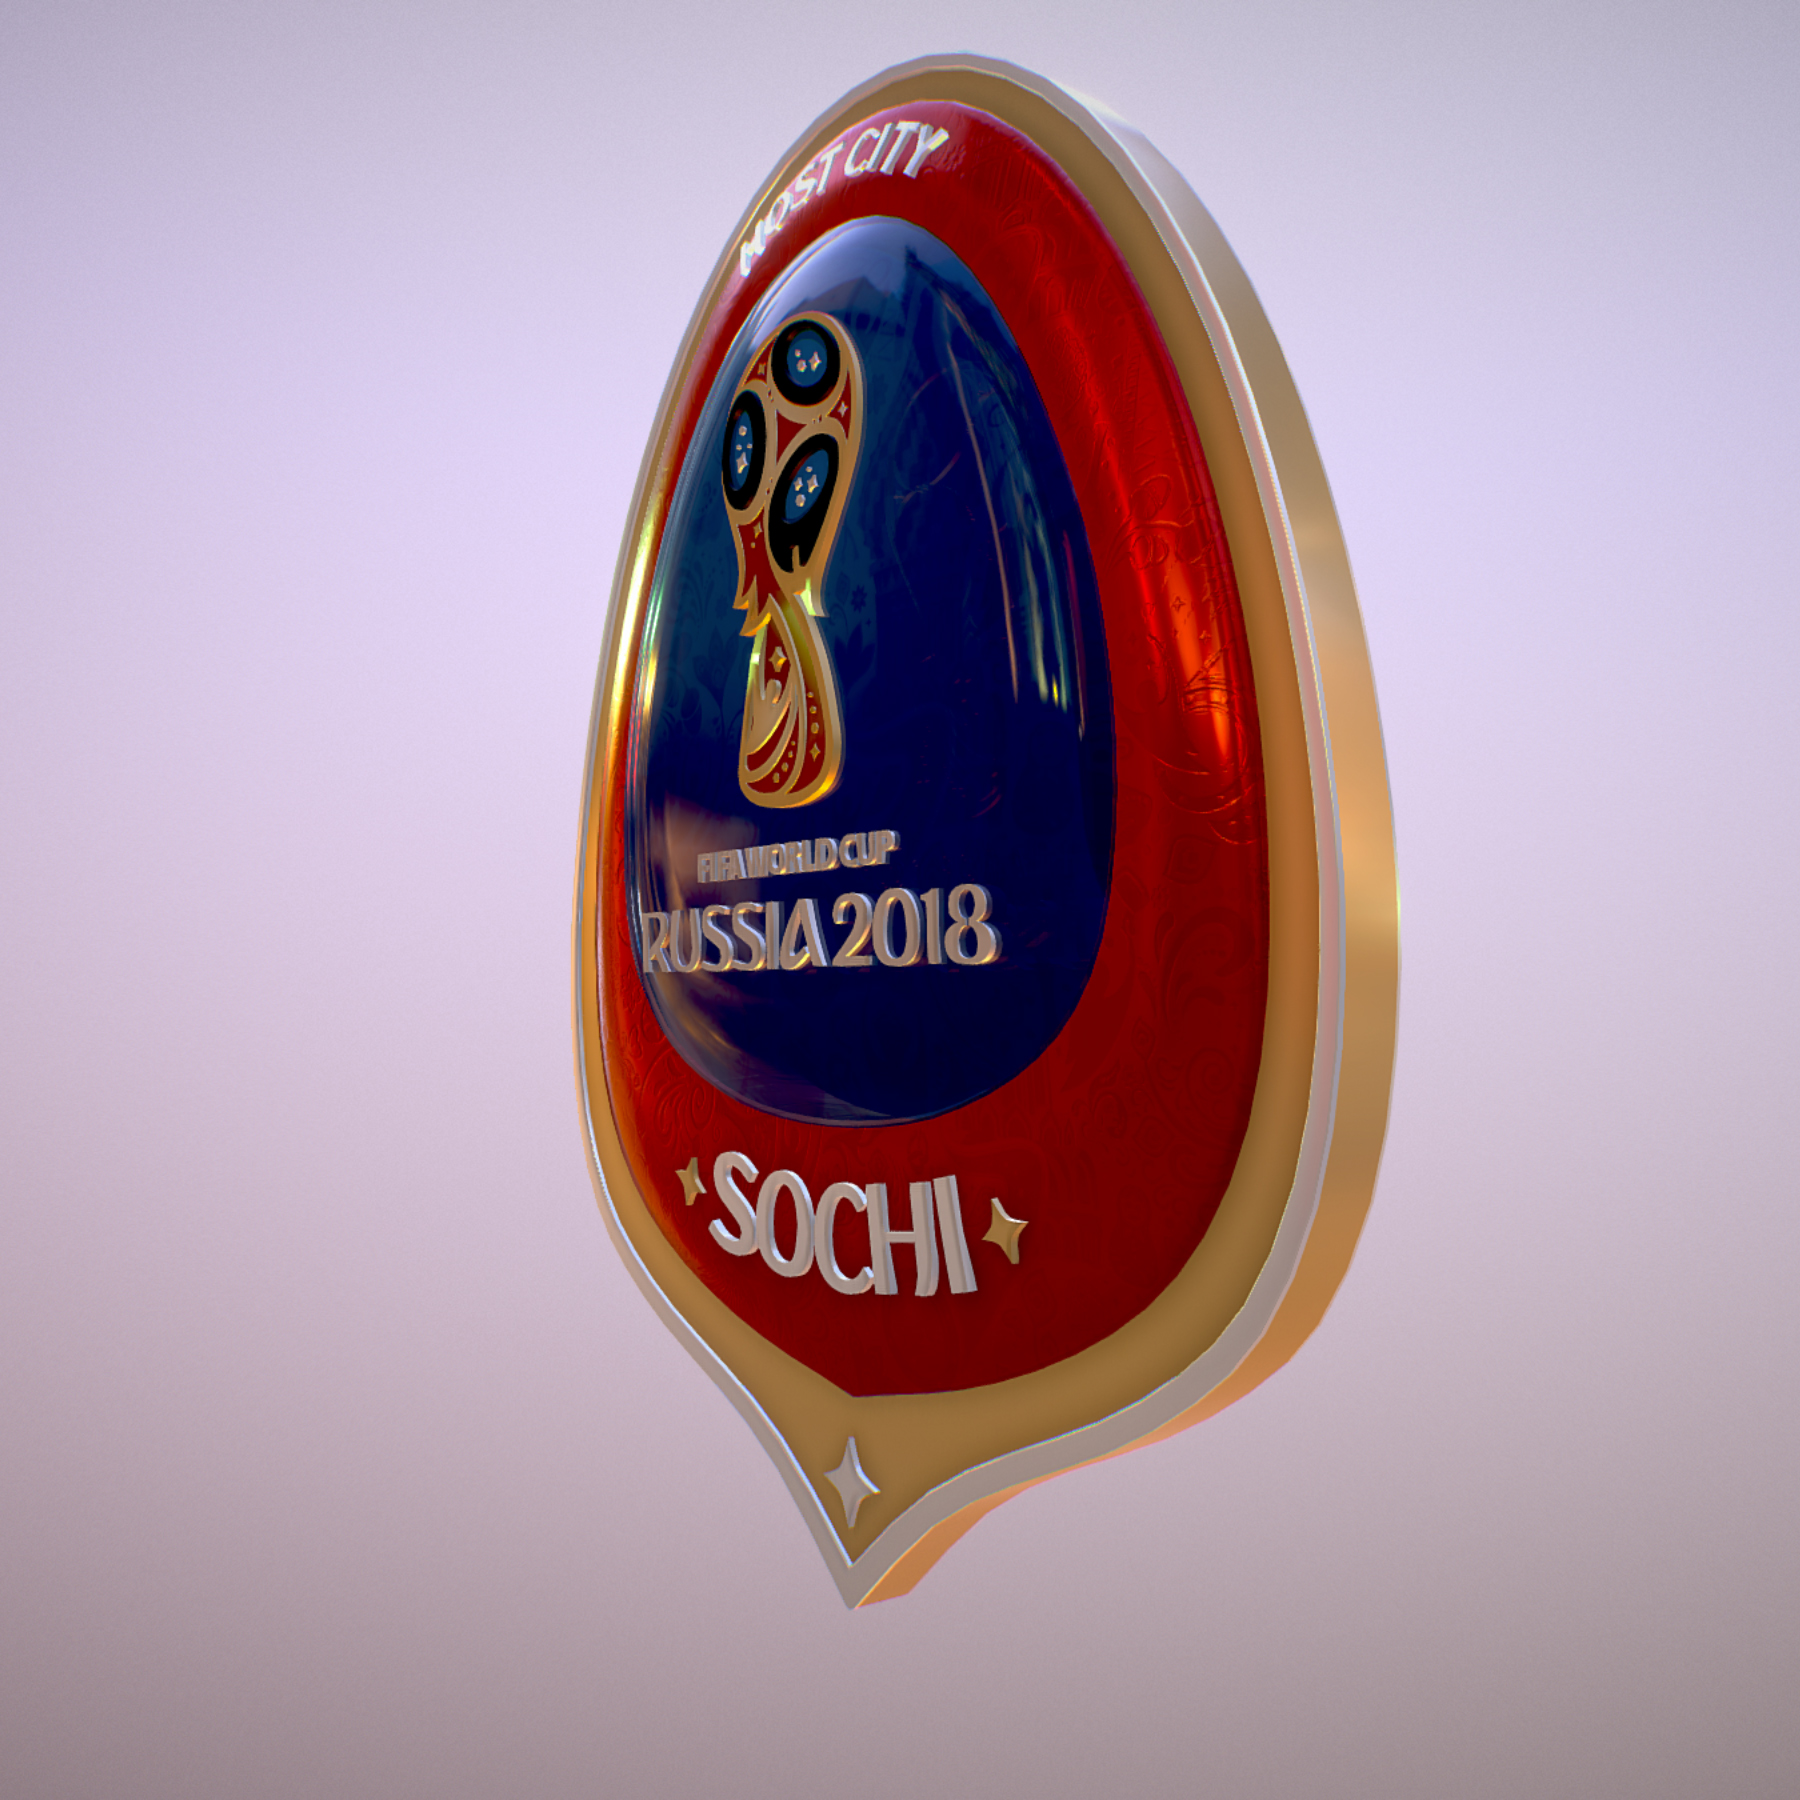 sochi host city world cup russia 2018 symbol 3d model max  fbx ma mb obj 271710